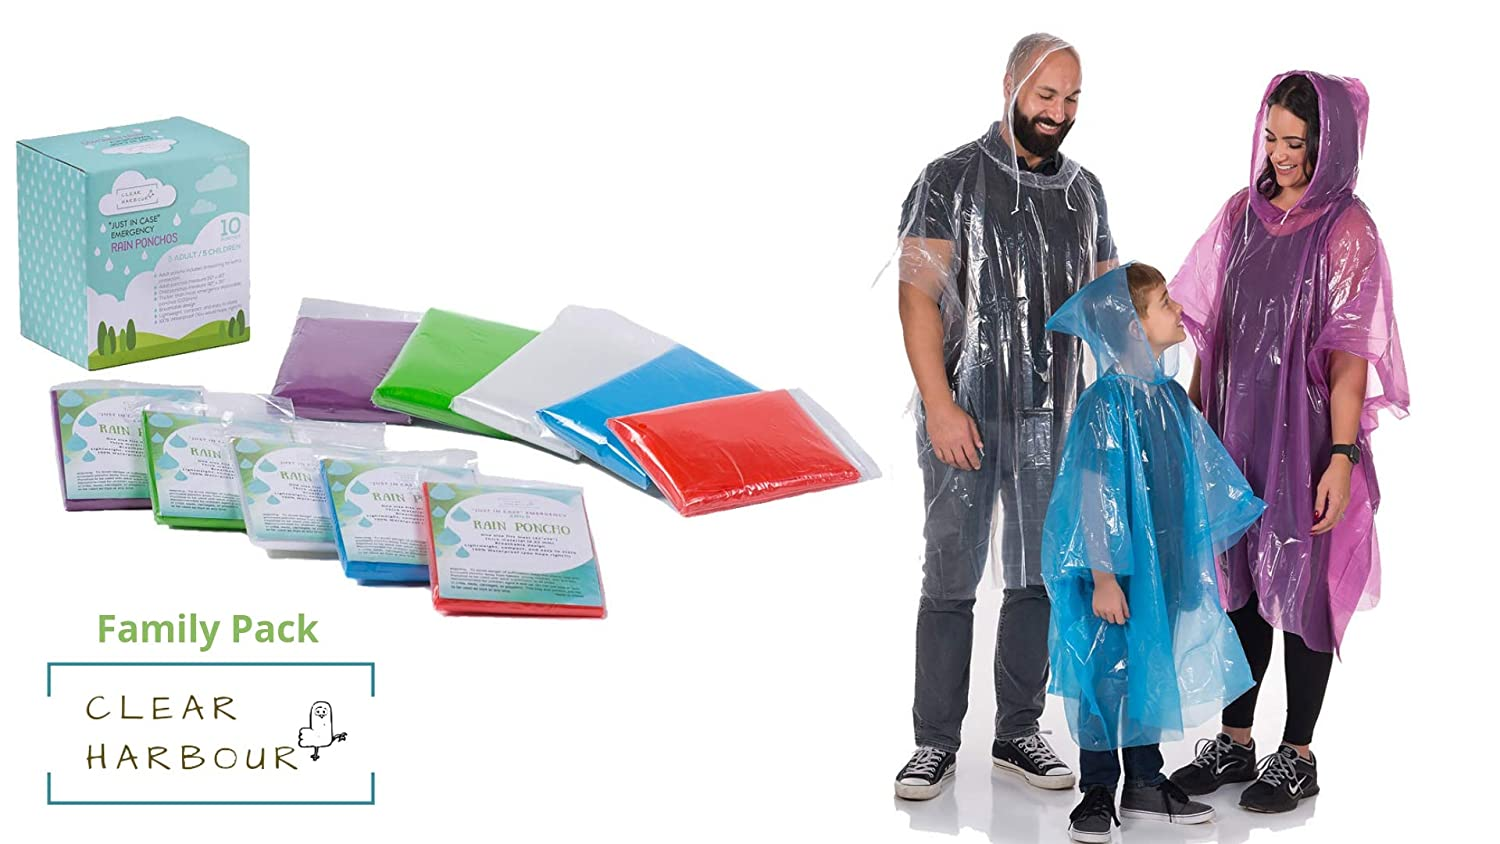 Clear Harbour Emergency Disposable Poncho Family Pack | Thick Reusable .03mm PE Plastic Rain Ponchos for Women, Men, and Children | Rain Poncho Family Pack for Disney